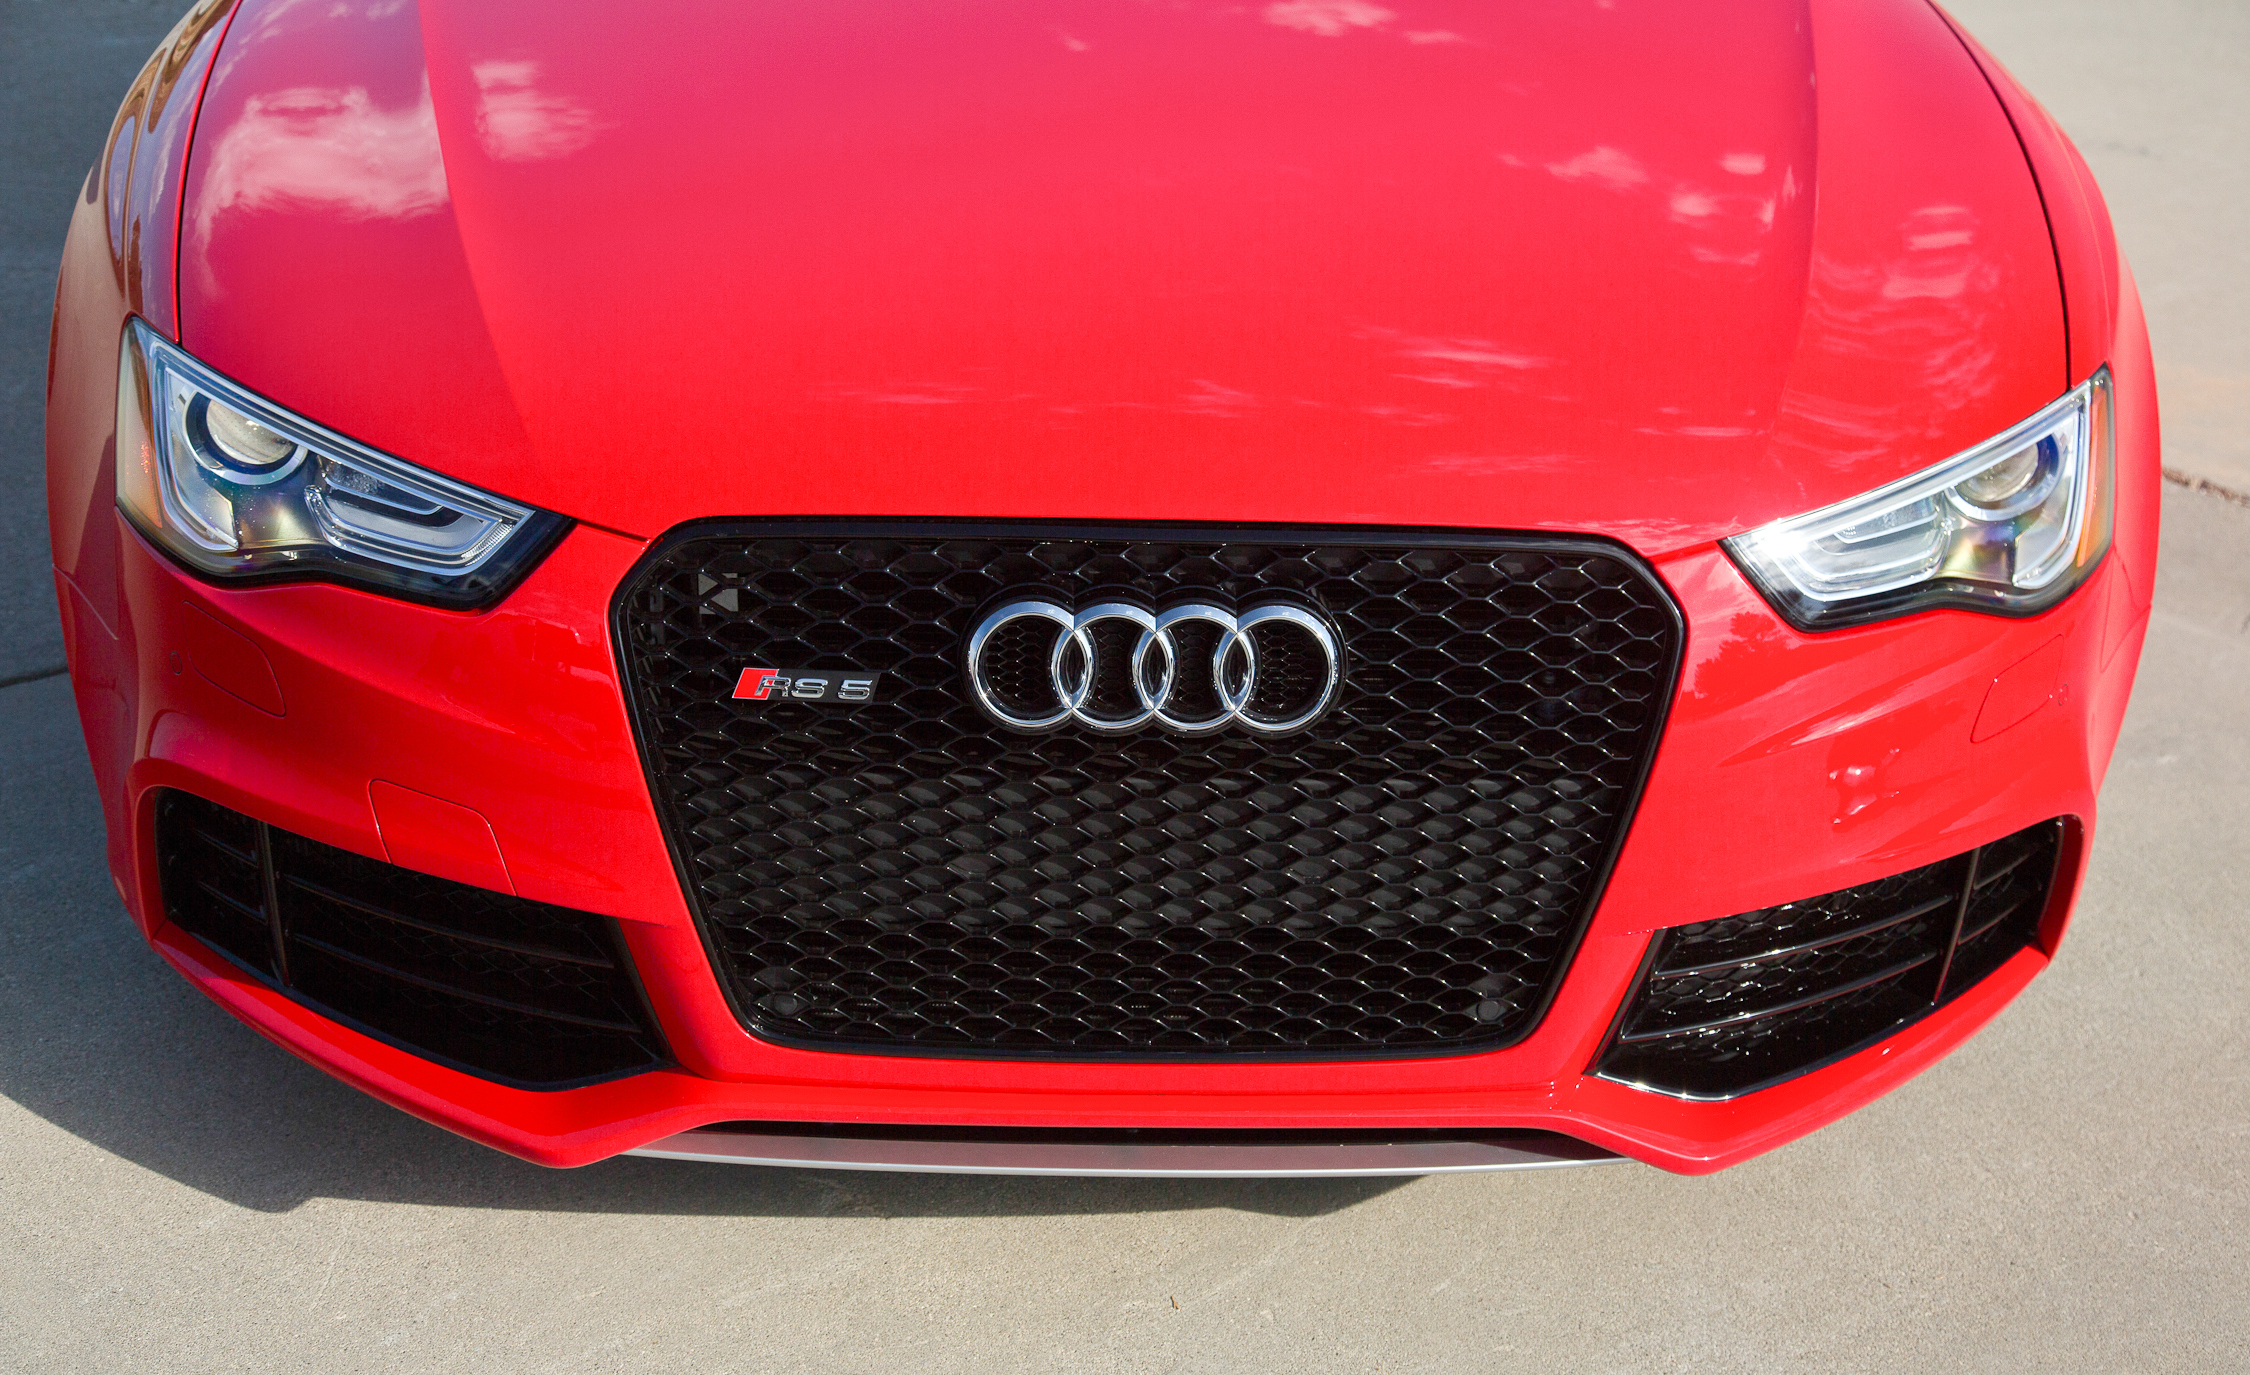 2013 Audi RS 5 Exterior View Grille And Front Bumper (View 41 of 41)